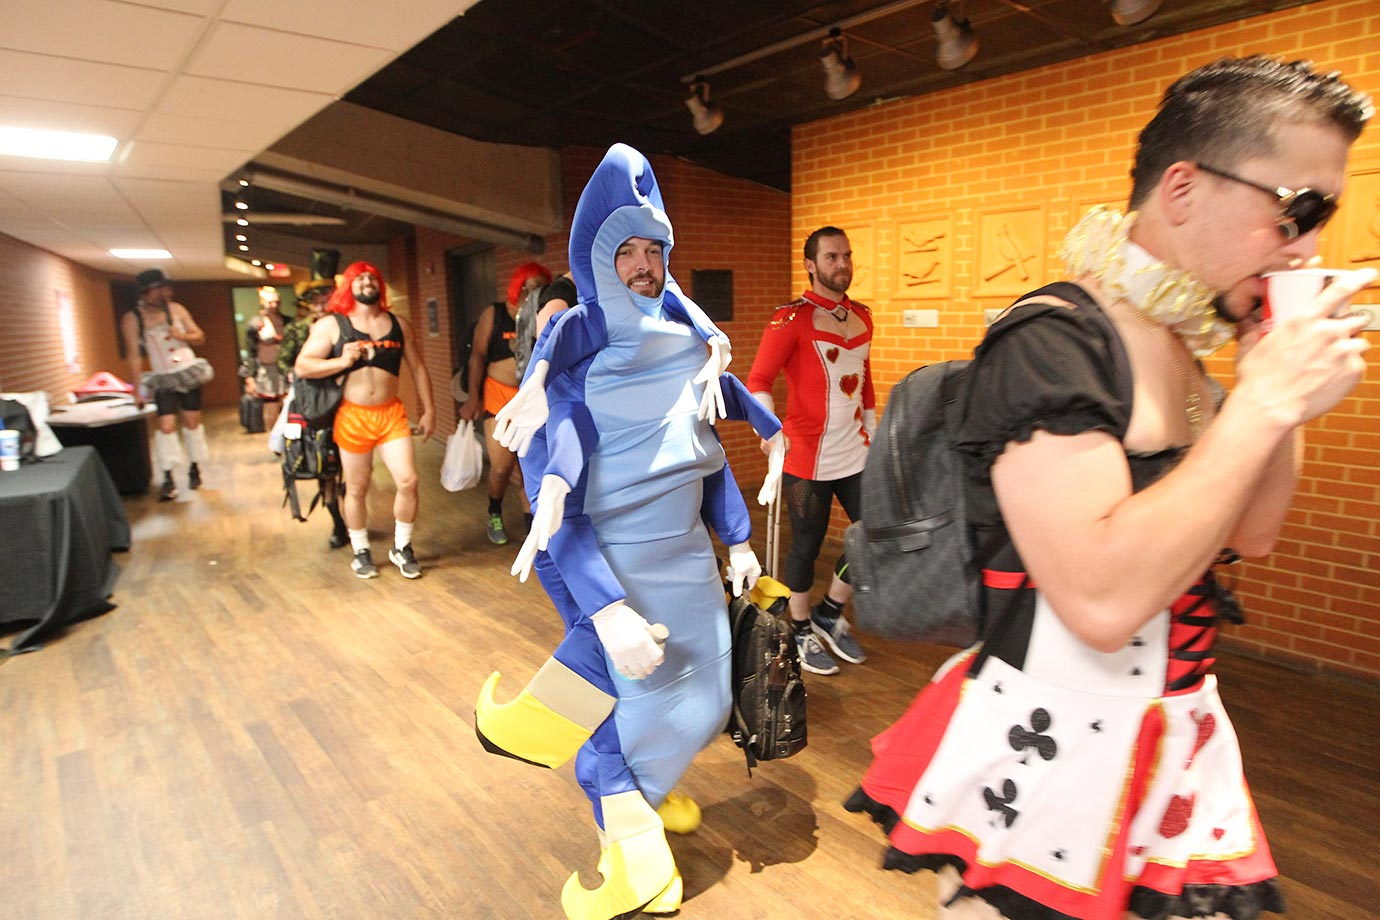 Rookie members of the Milwaukee Brewers walk to their bus in Alice in Wonderland outfits after defeating the Cardinals 8-4 at Busch Stadium.